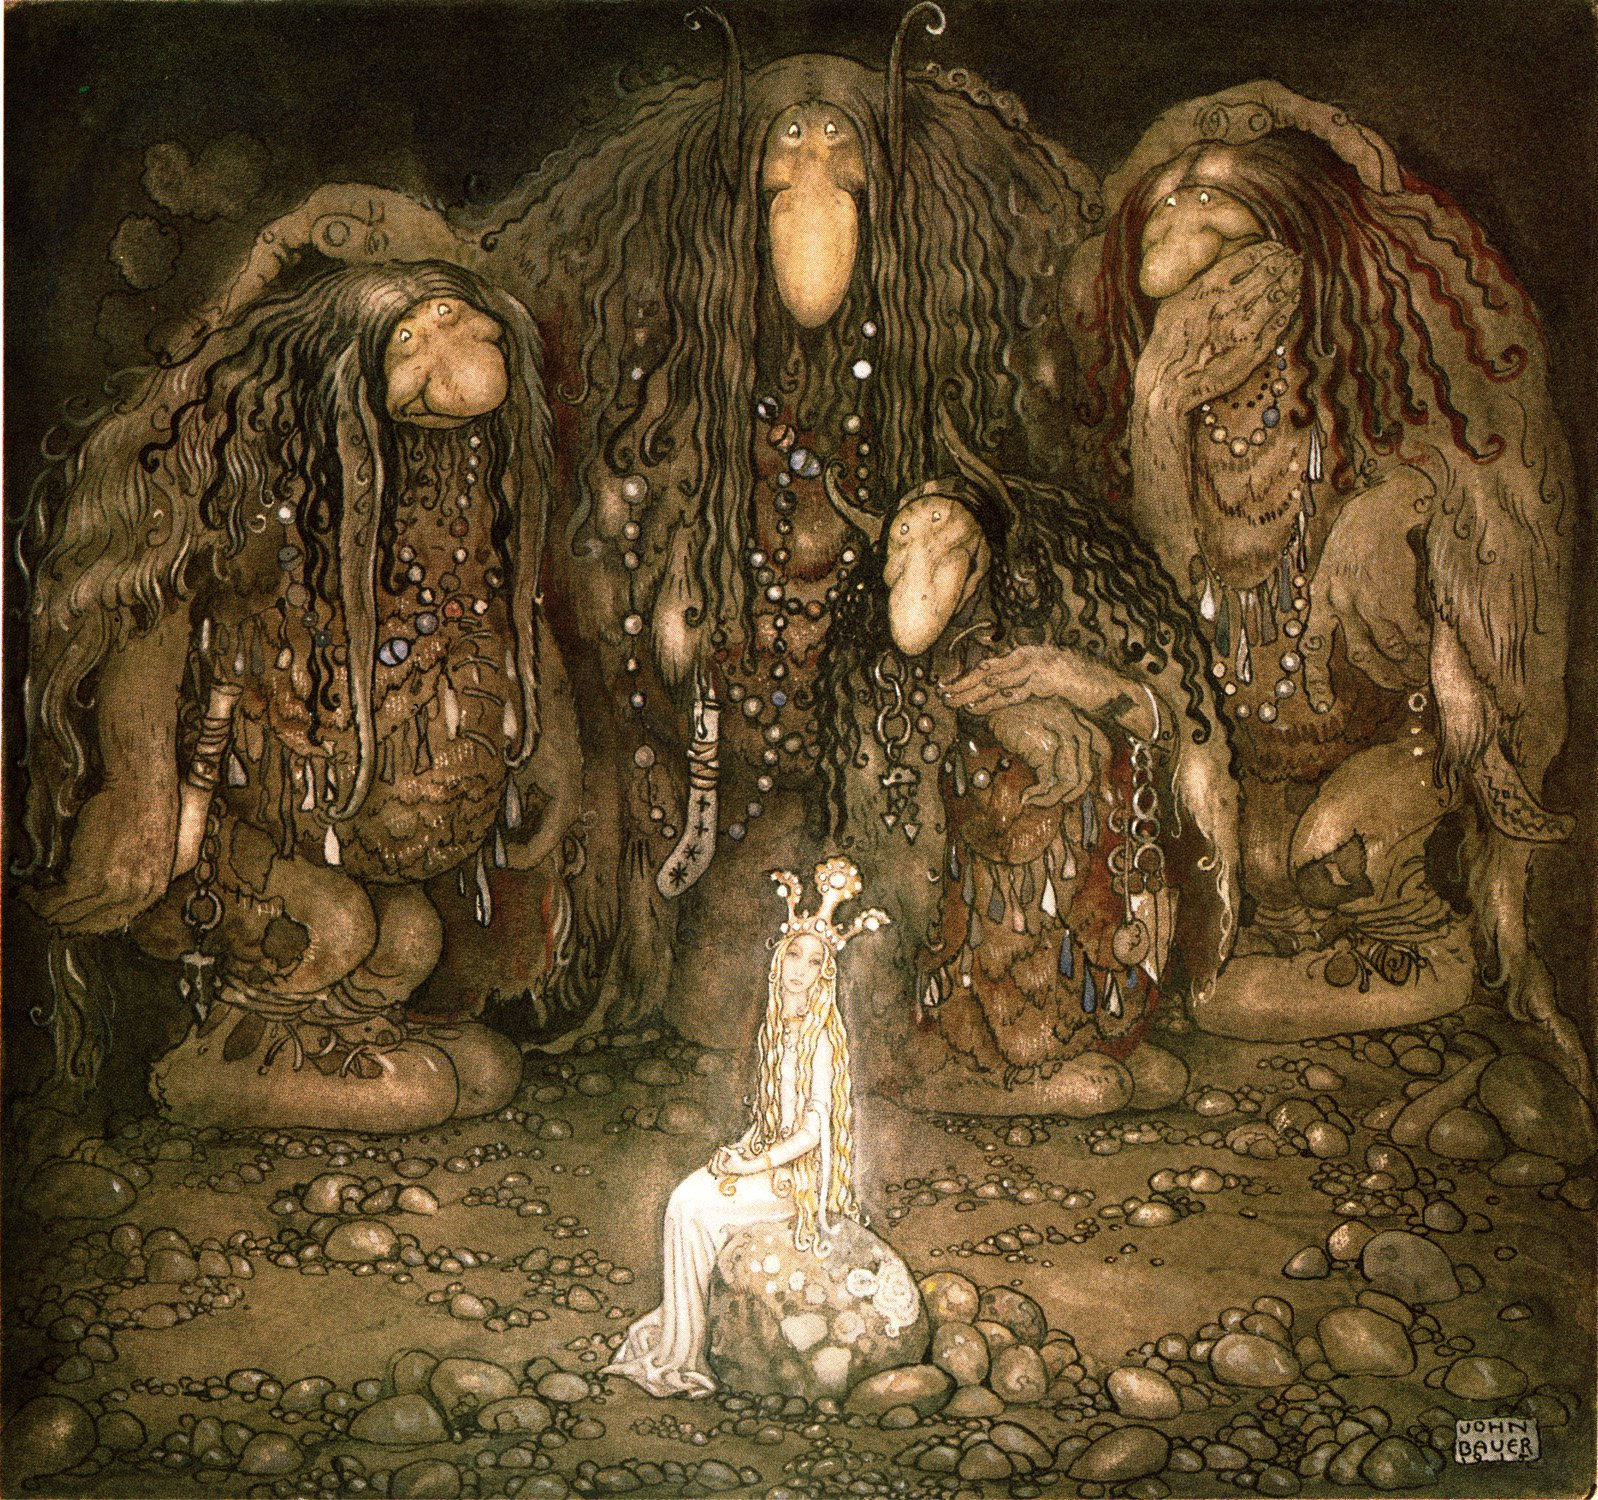 Illustration Of Three Trolls Surrounding A Princess In Dark Area As Adapted From